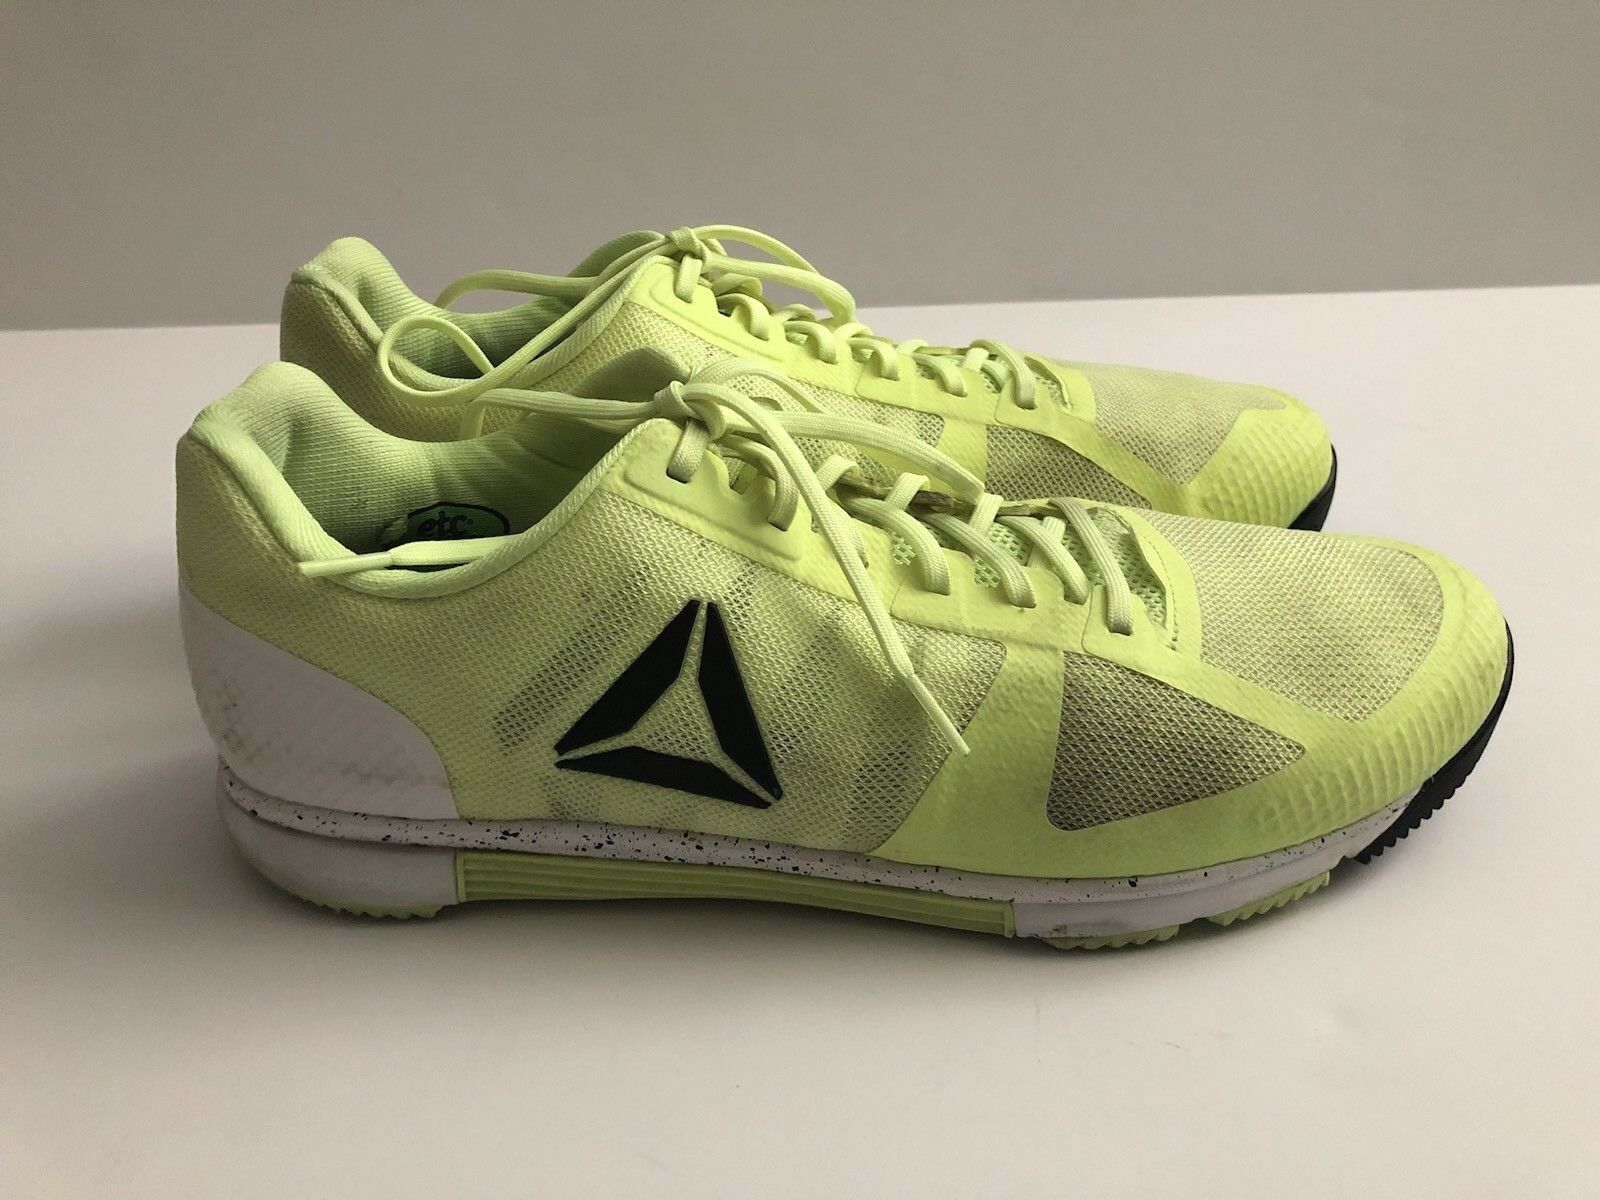 Reebok Crossfit Homme Chaussures Jaune Taille:12